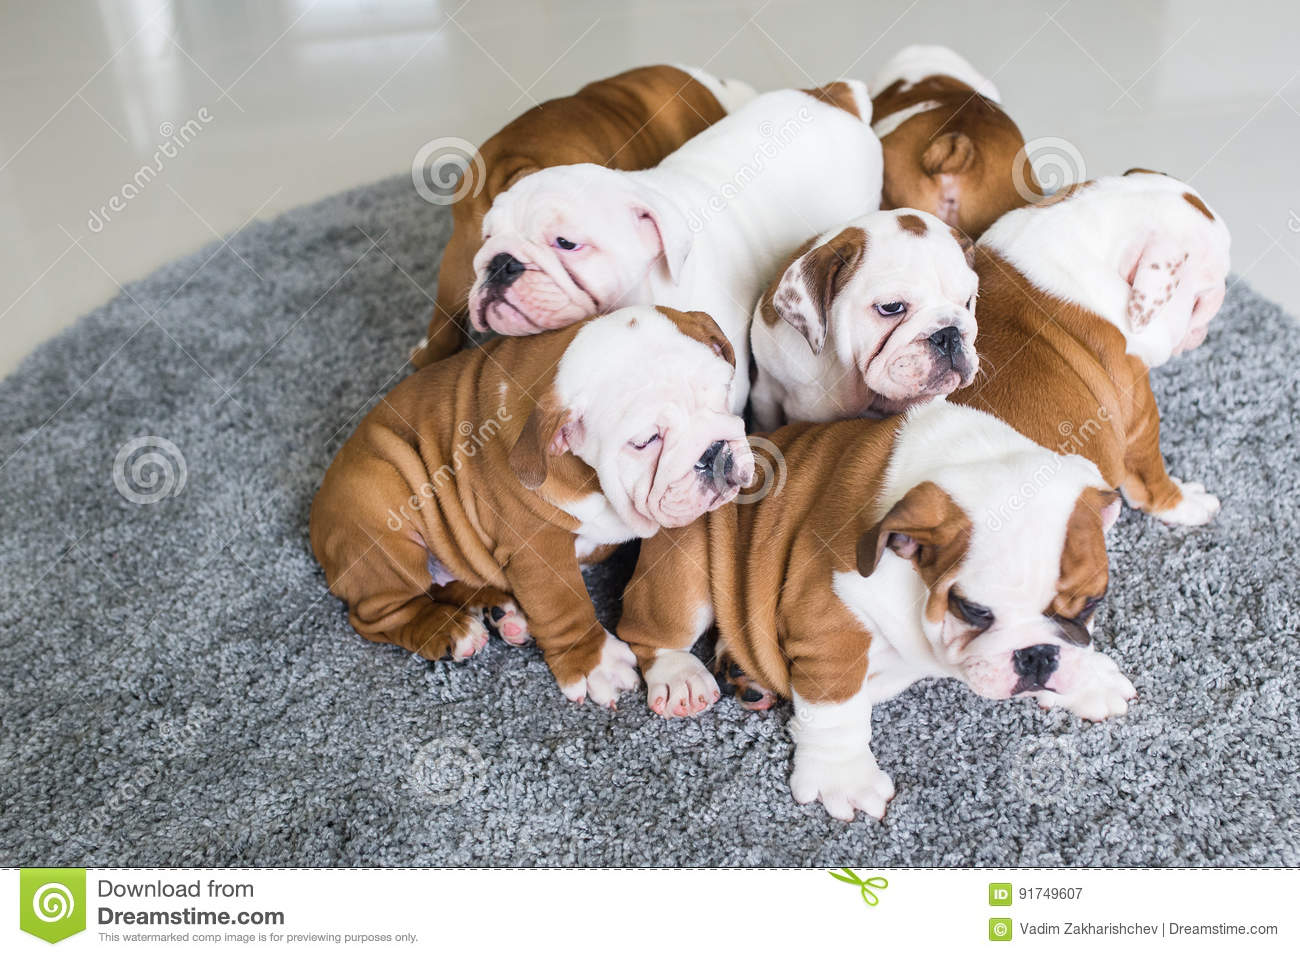 English Bulldog Puppies Lie Together On The Carpet Stock Image